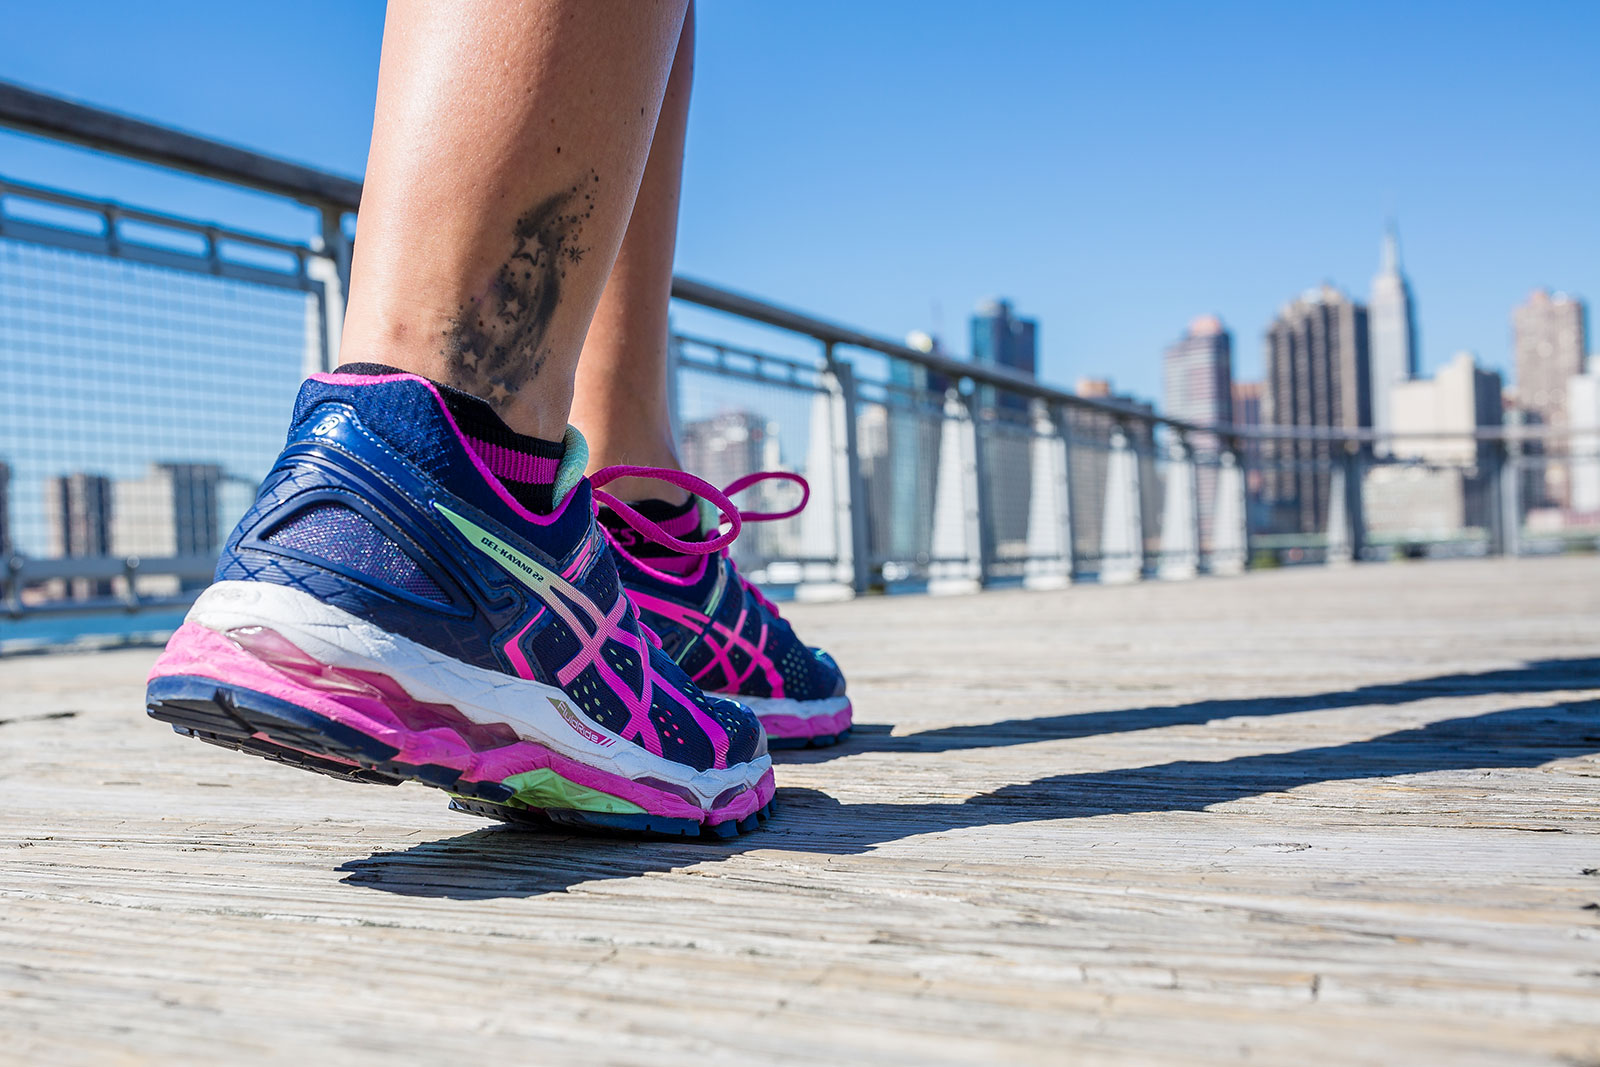 If You Want To Bike Have A Become Runner Really The Right Running Shoes